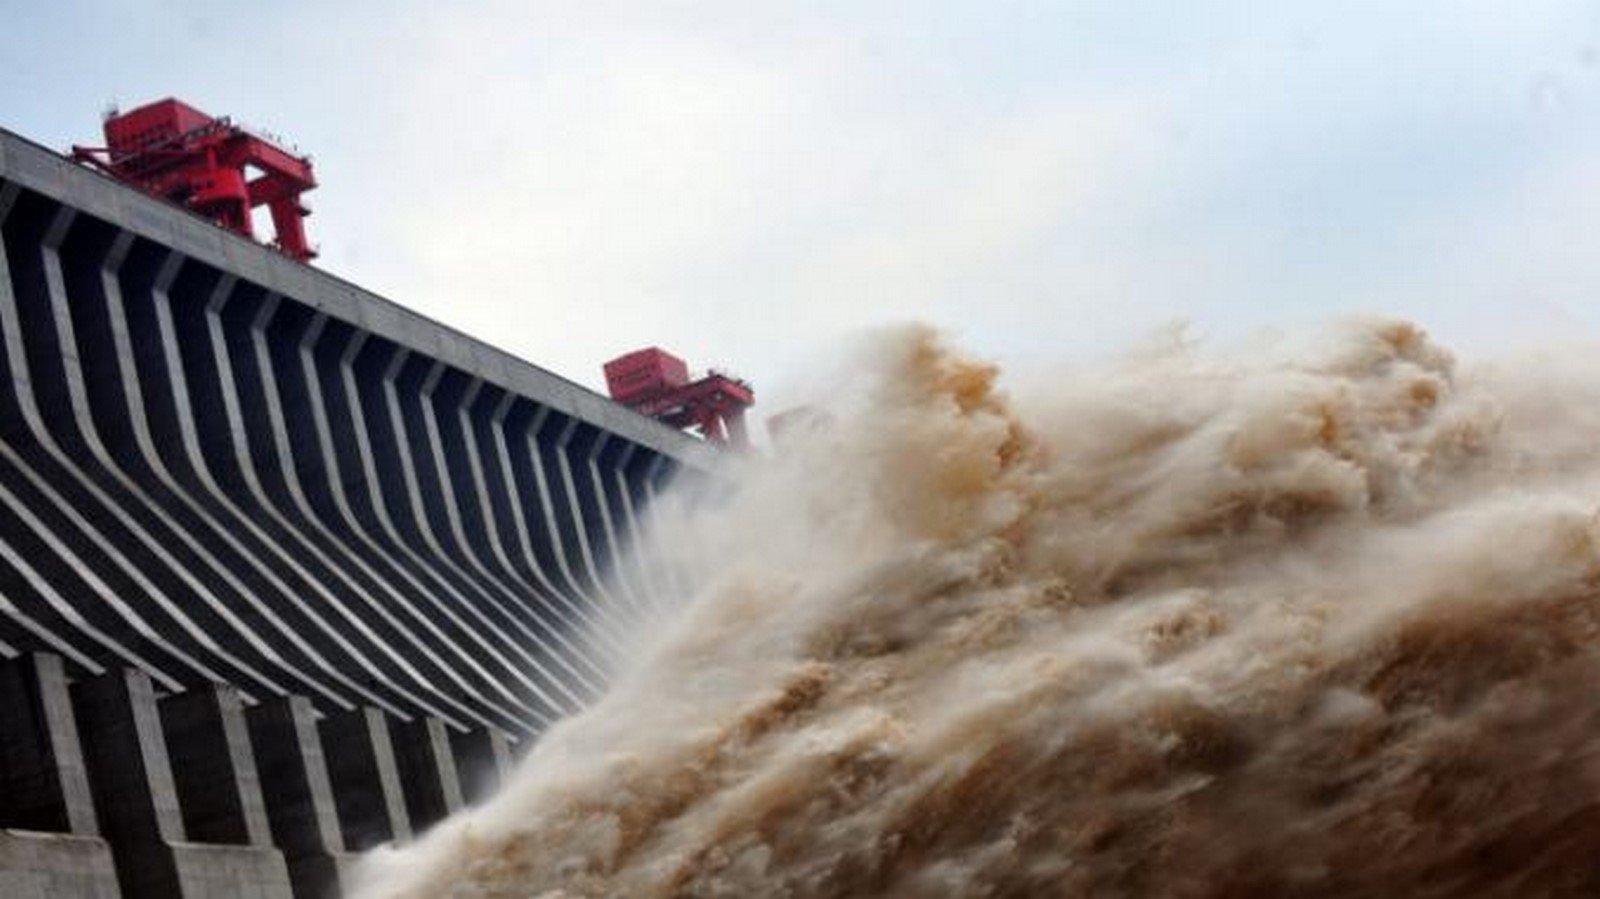 Three Gorges Dam by Pan Jiazheng- The world's Largest hydroelectric dam - Sheet18